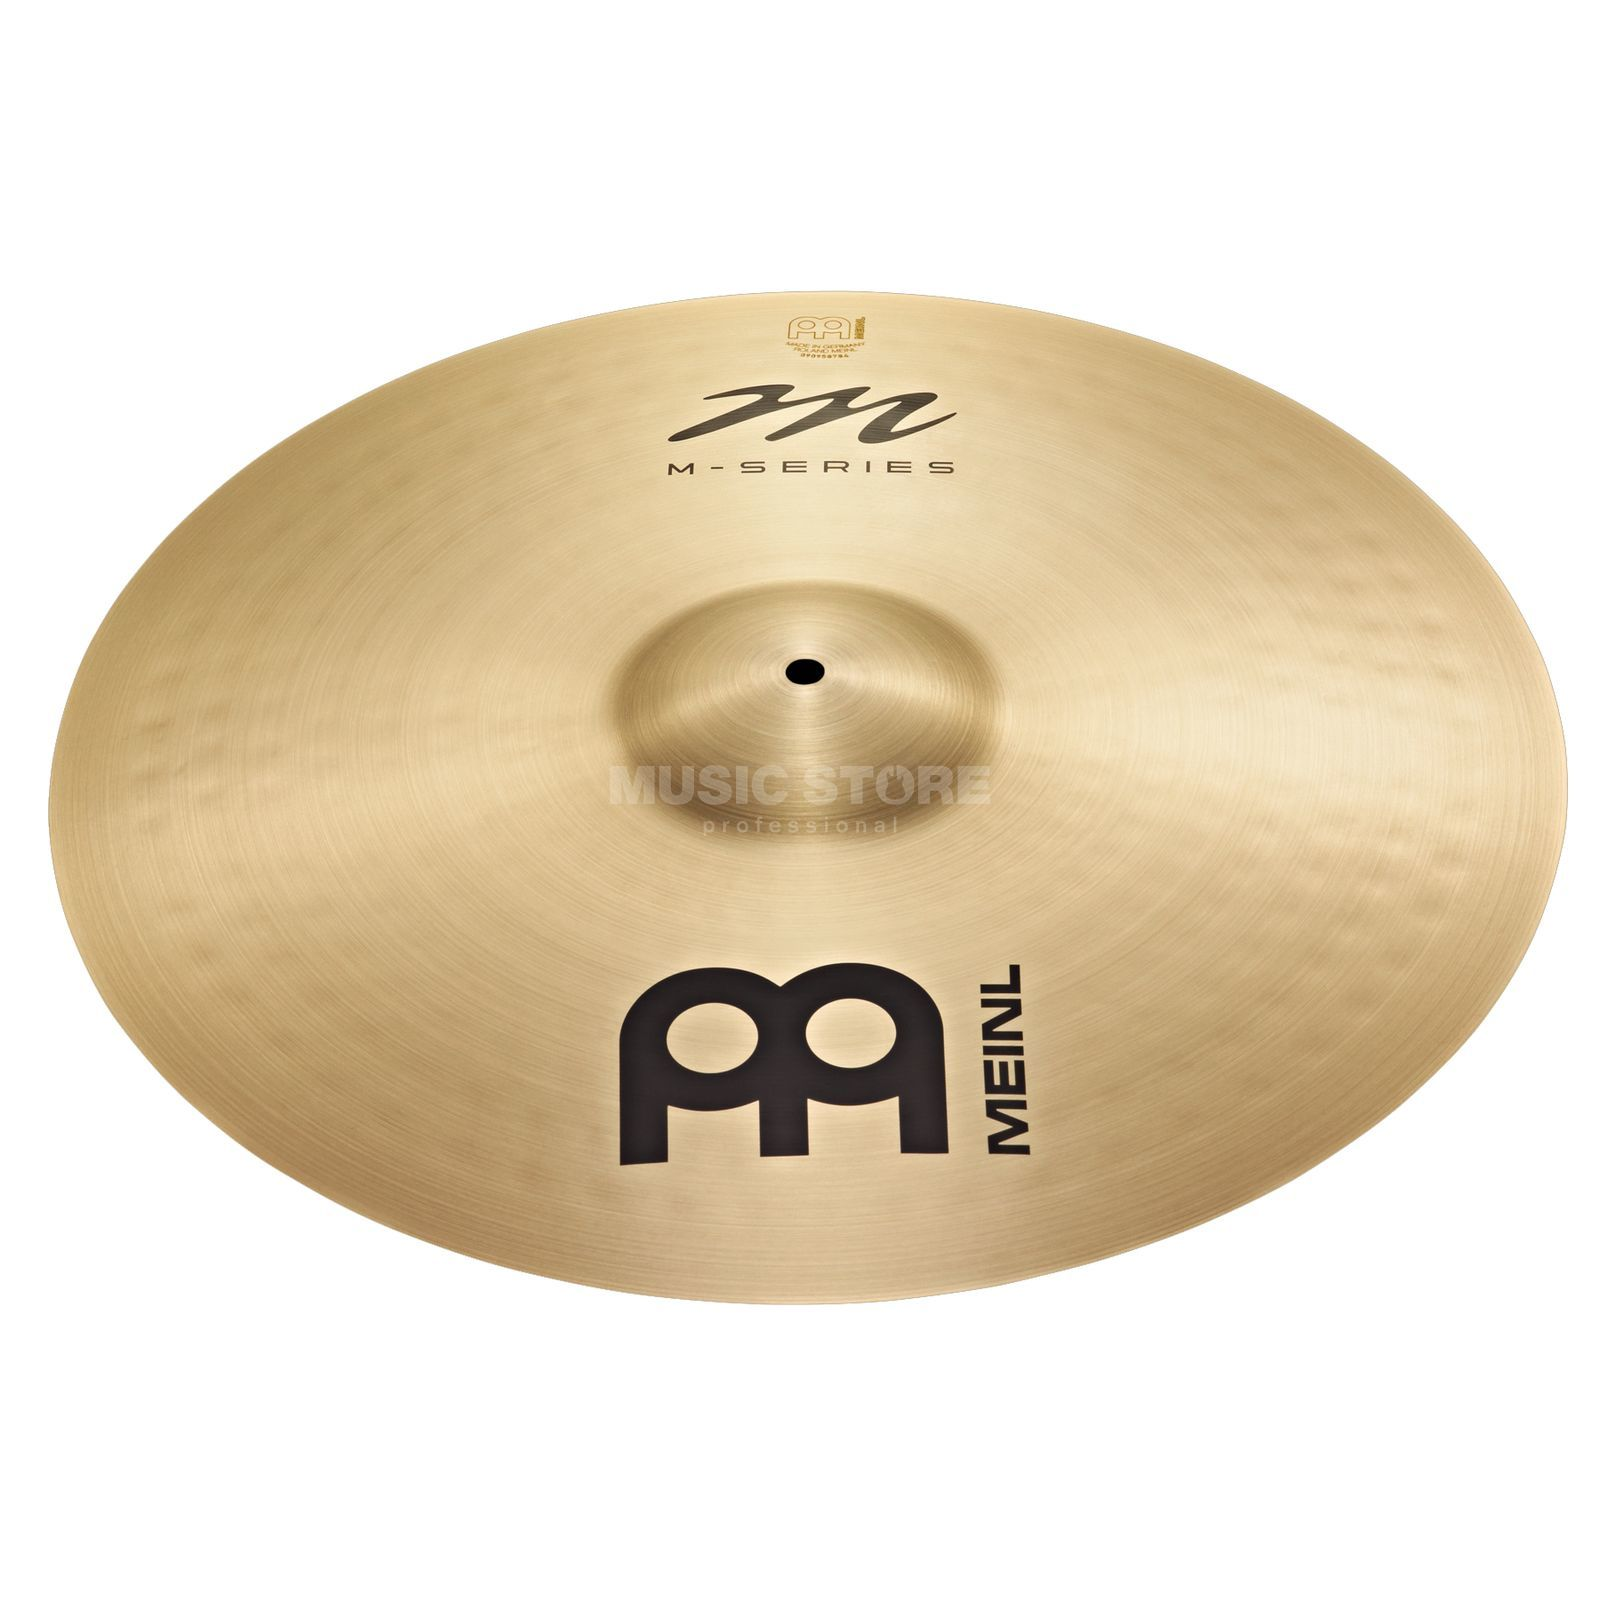 Meinl M-Series Heavy Ride MS20HR Product Image